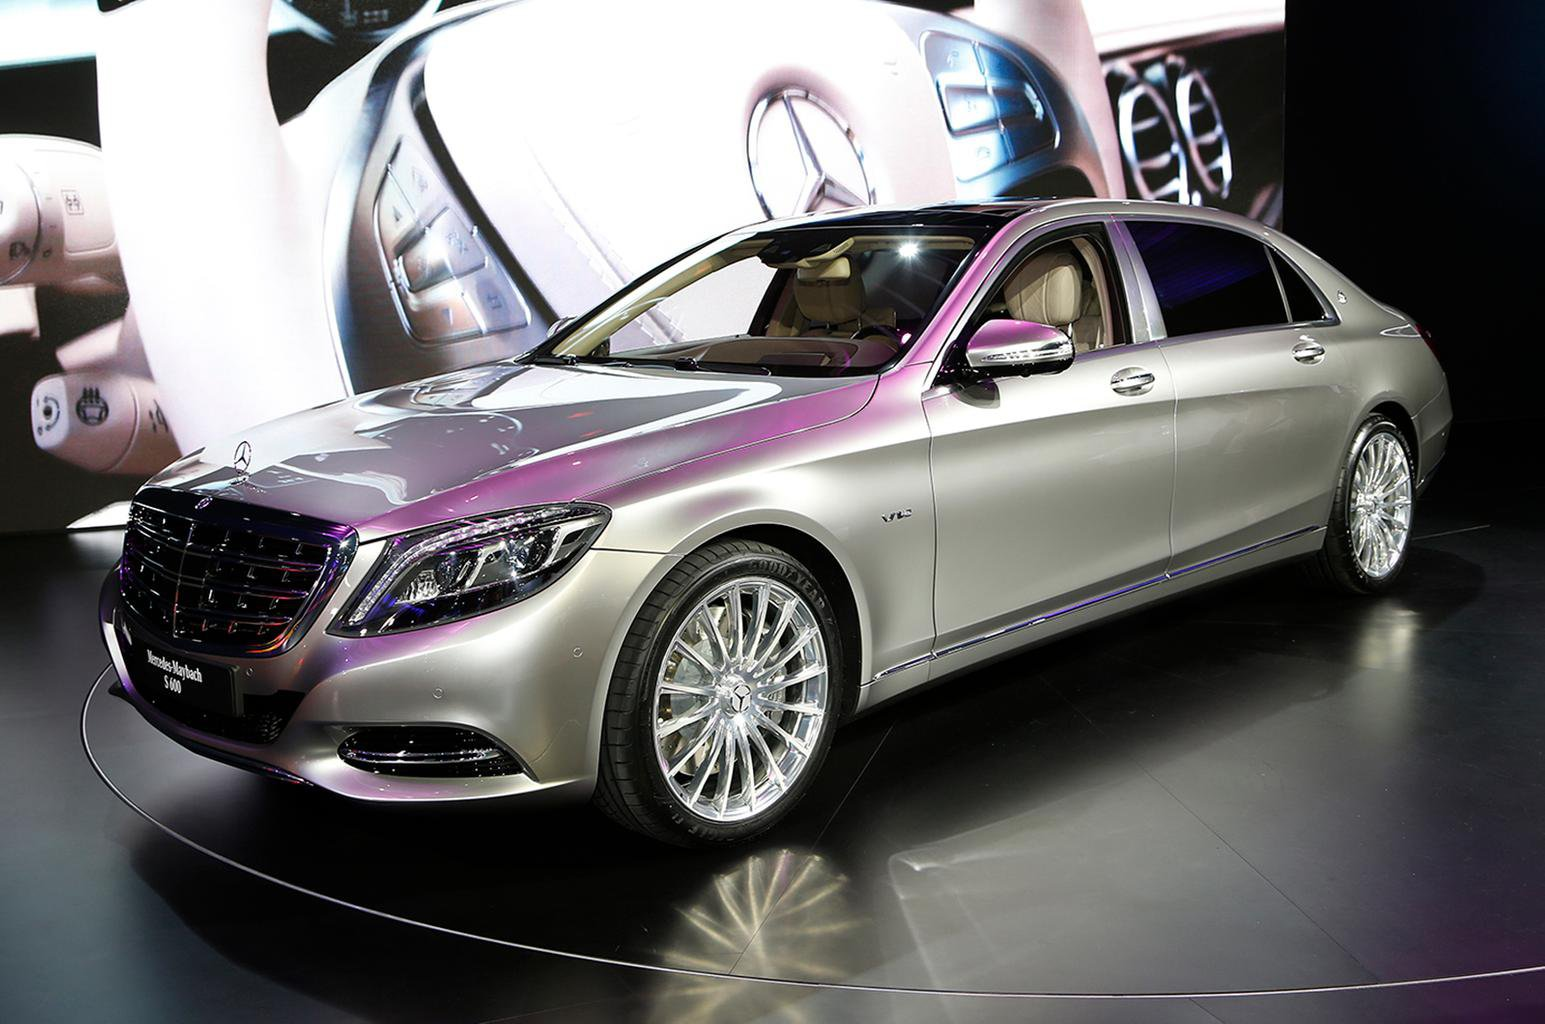 Mercedes-Maybach S600 - pricing, specification and pictures